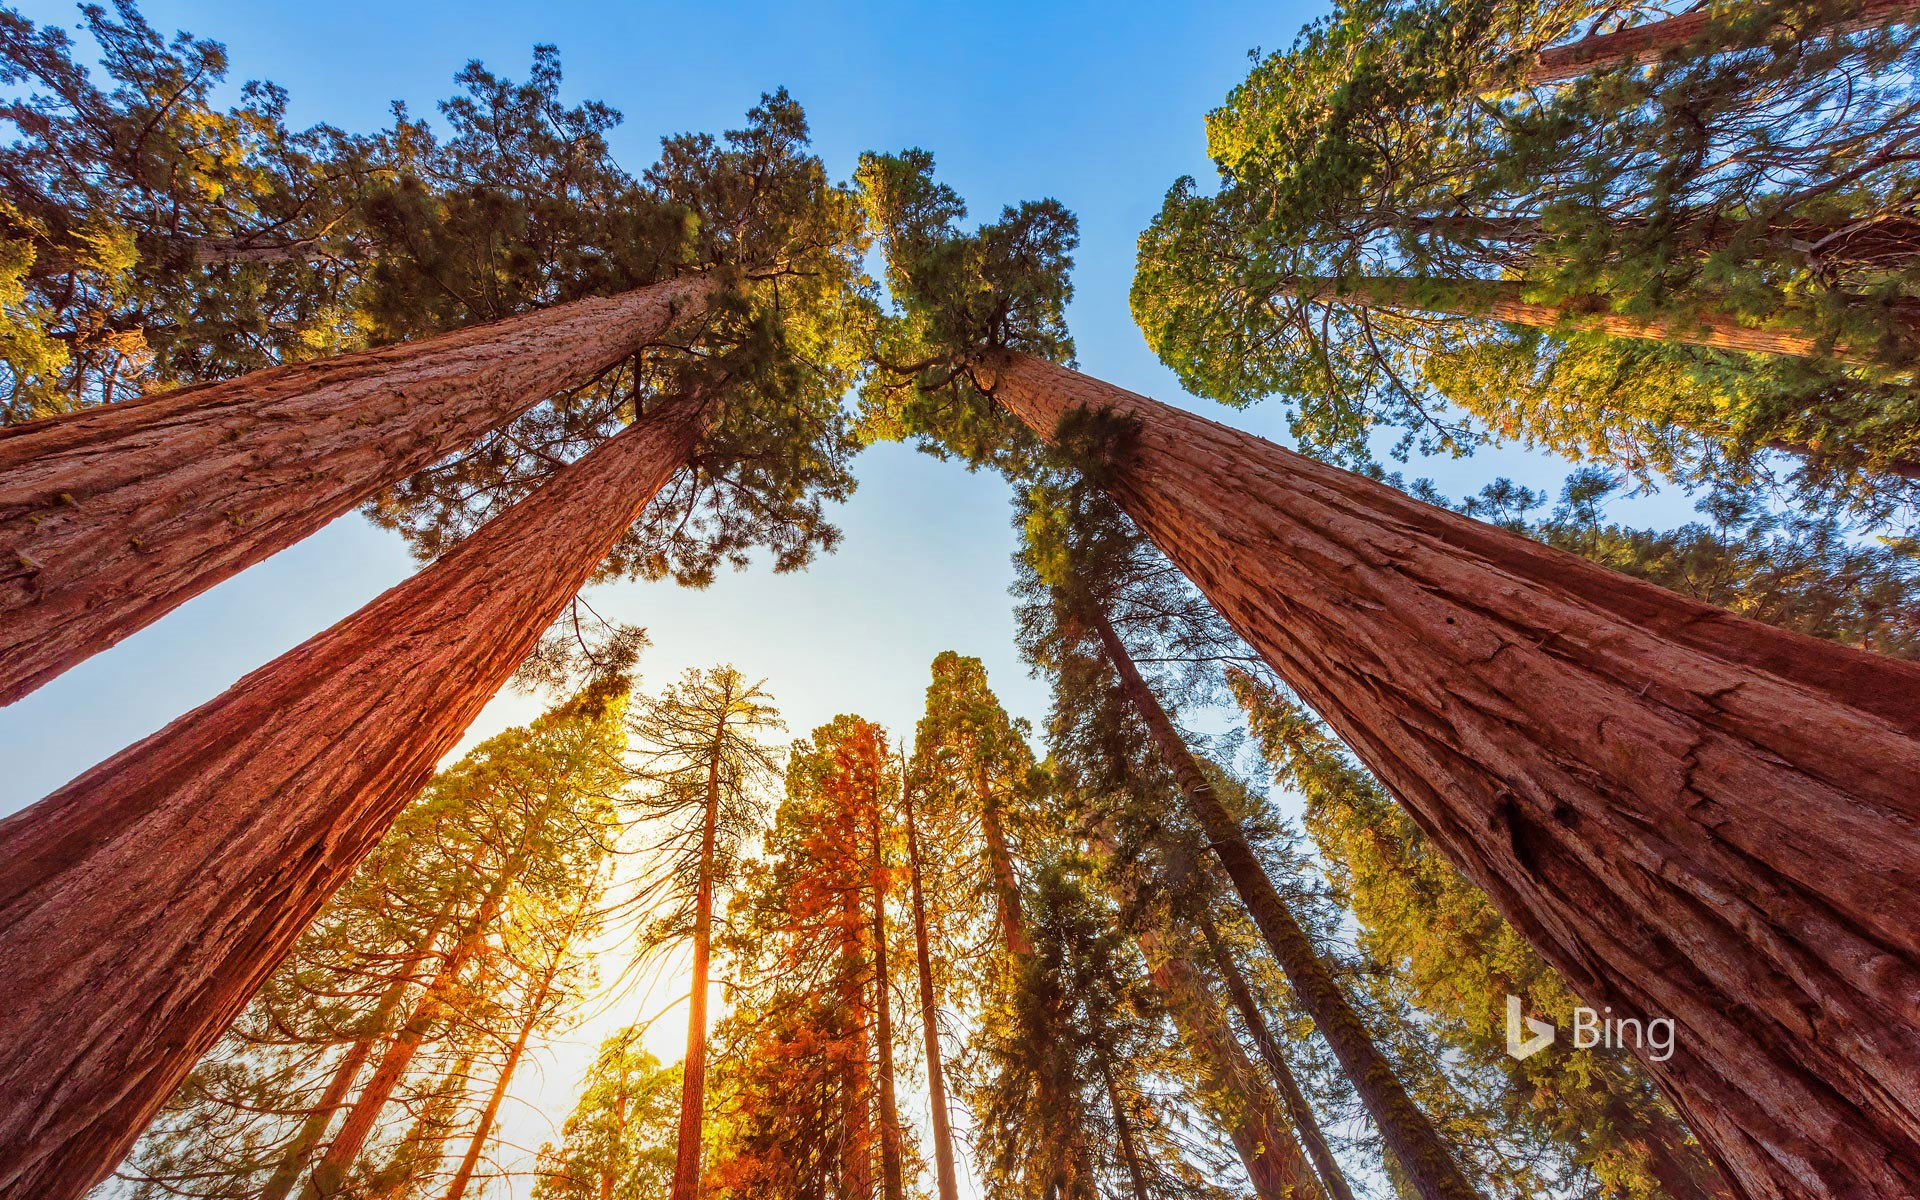 Giant sequoia trees in Sequoia National Park and Kings Canyon National Park, California, USA